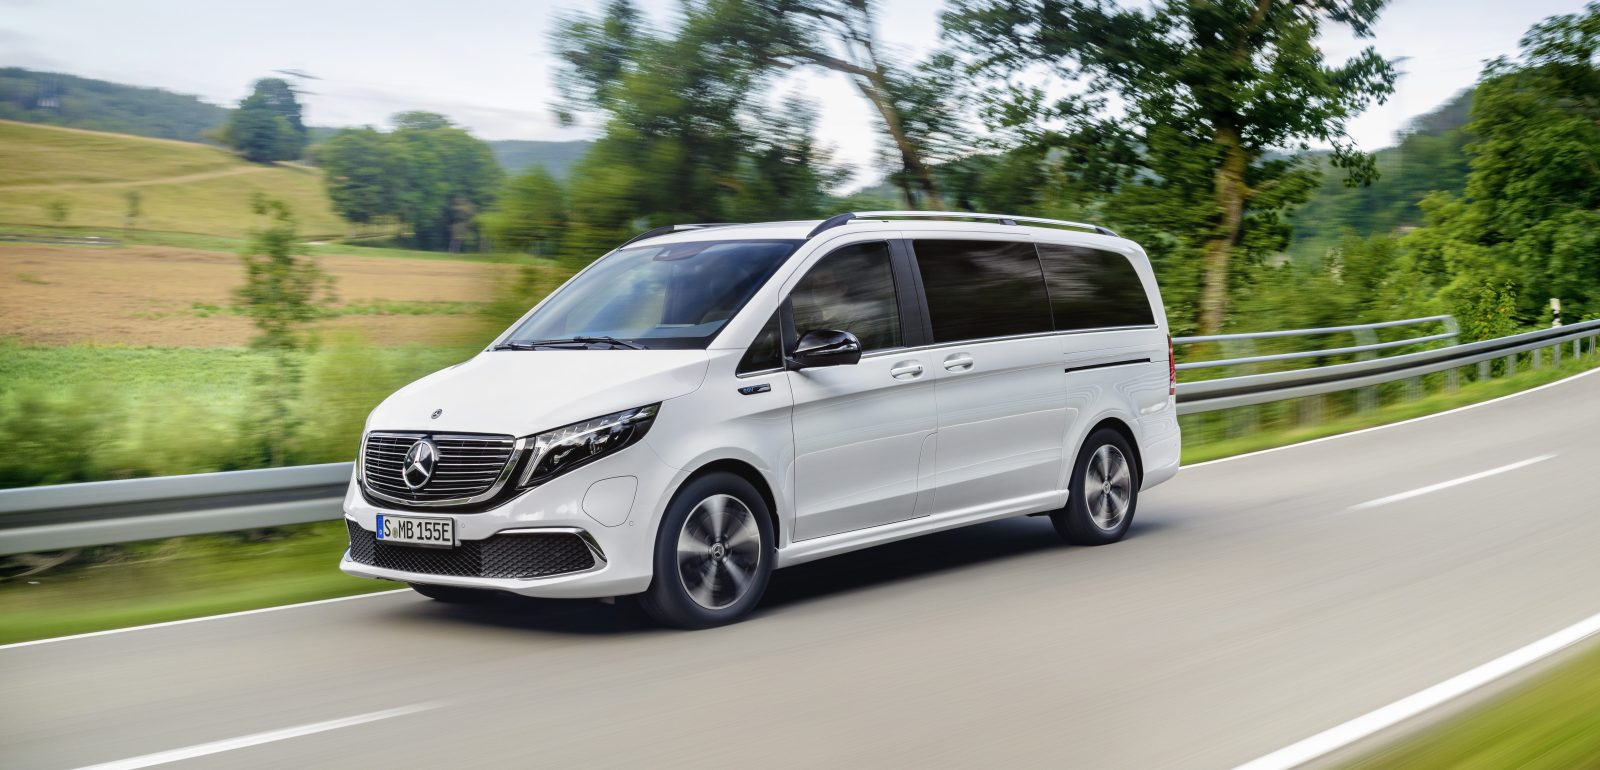 Mercedes-Benz unveils all-electric MPV van with 250 miles of range